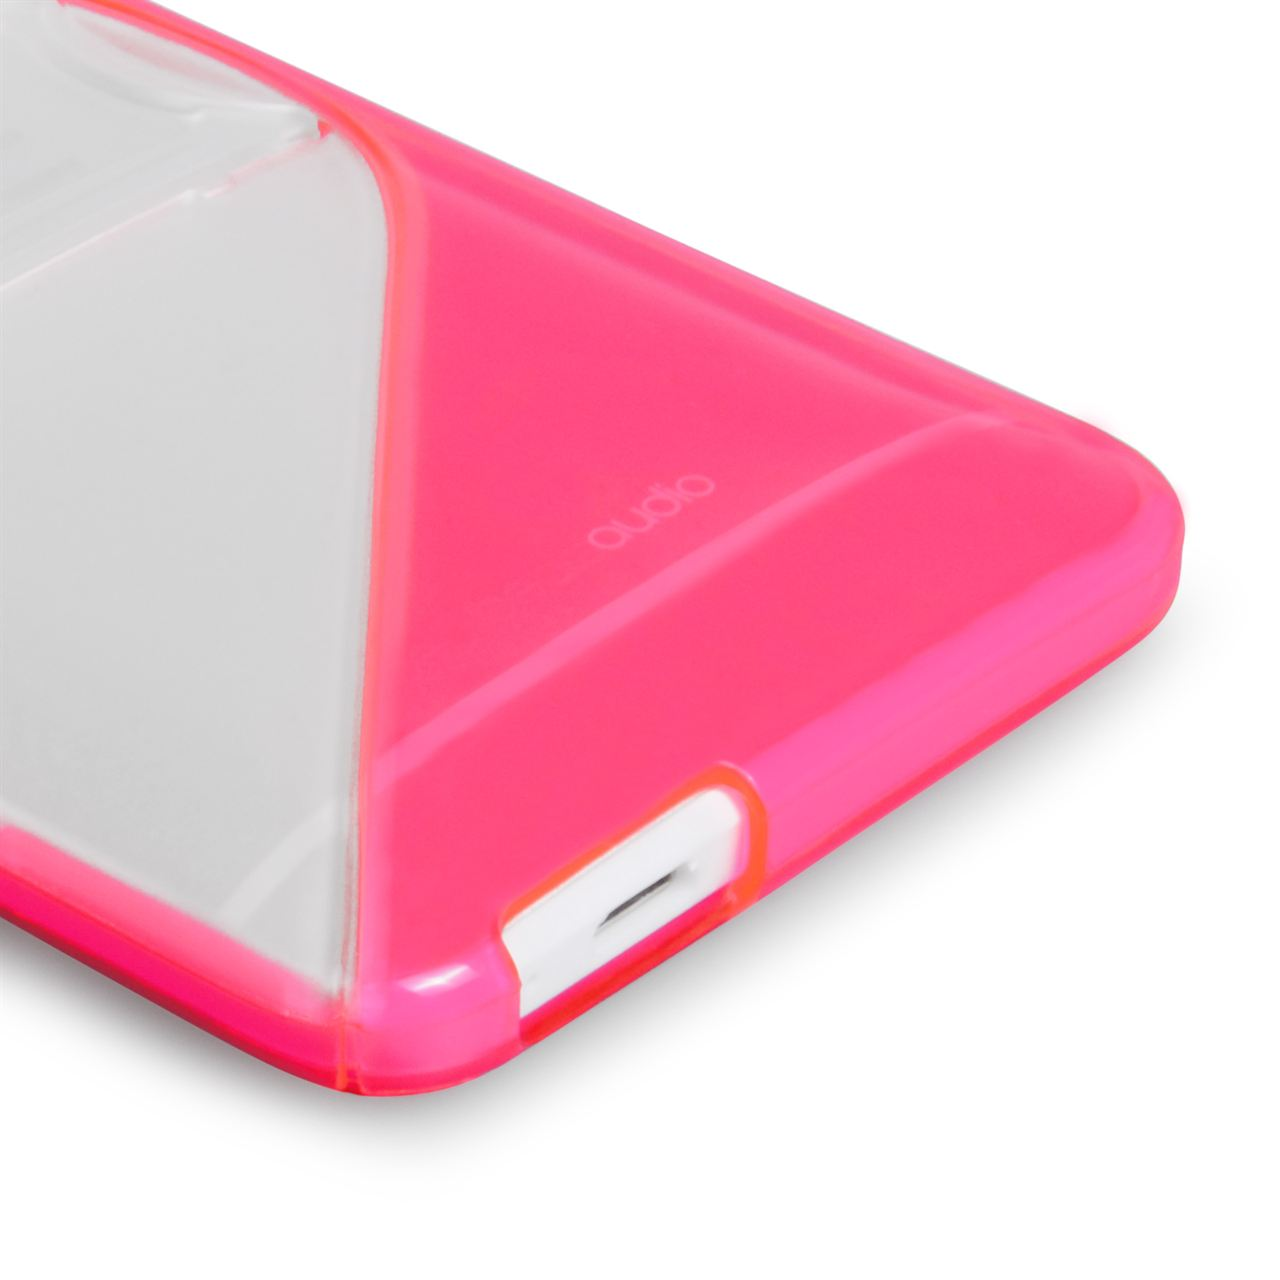 Caseflex HTC ONE Mini Silicone Gel S-Line Stand Case - White/Pink